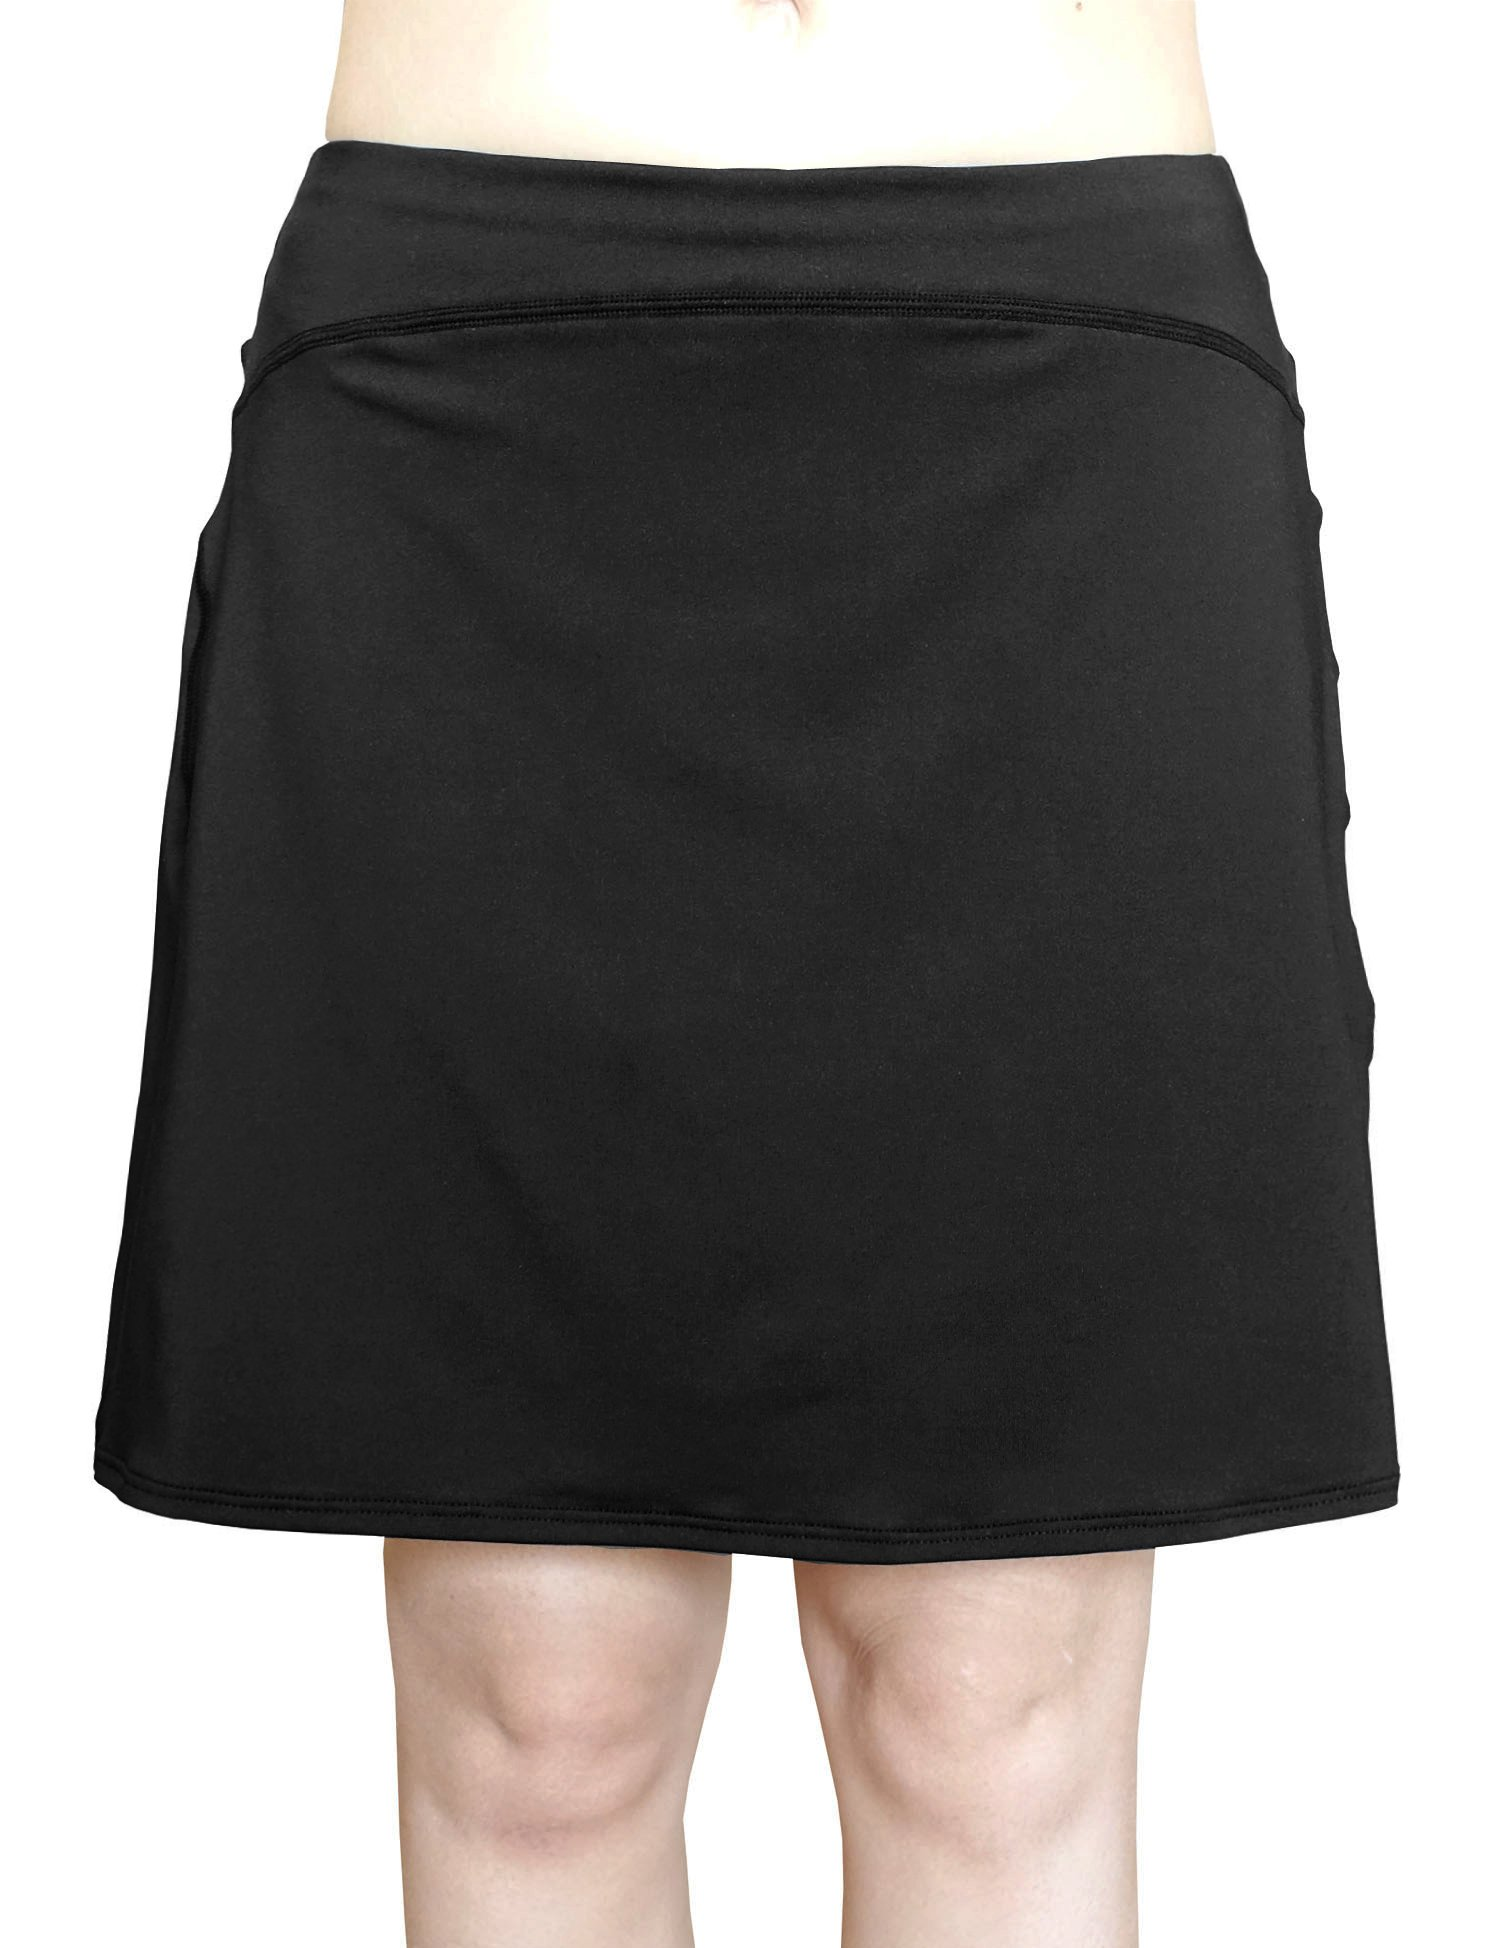 Cocoship Black Women's Multi-purpose Swim Cover Up Bottom Athletic UPF 50+ Sports Skirt L(FBA)